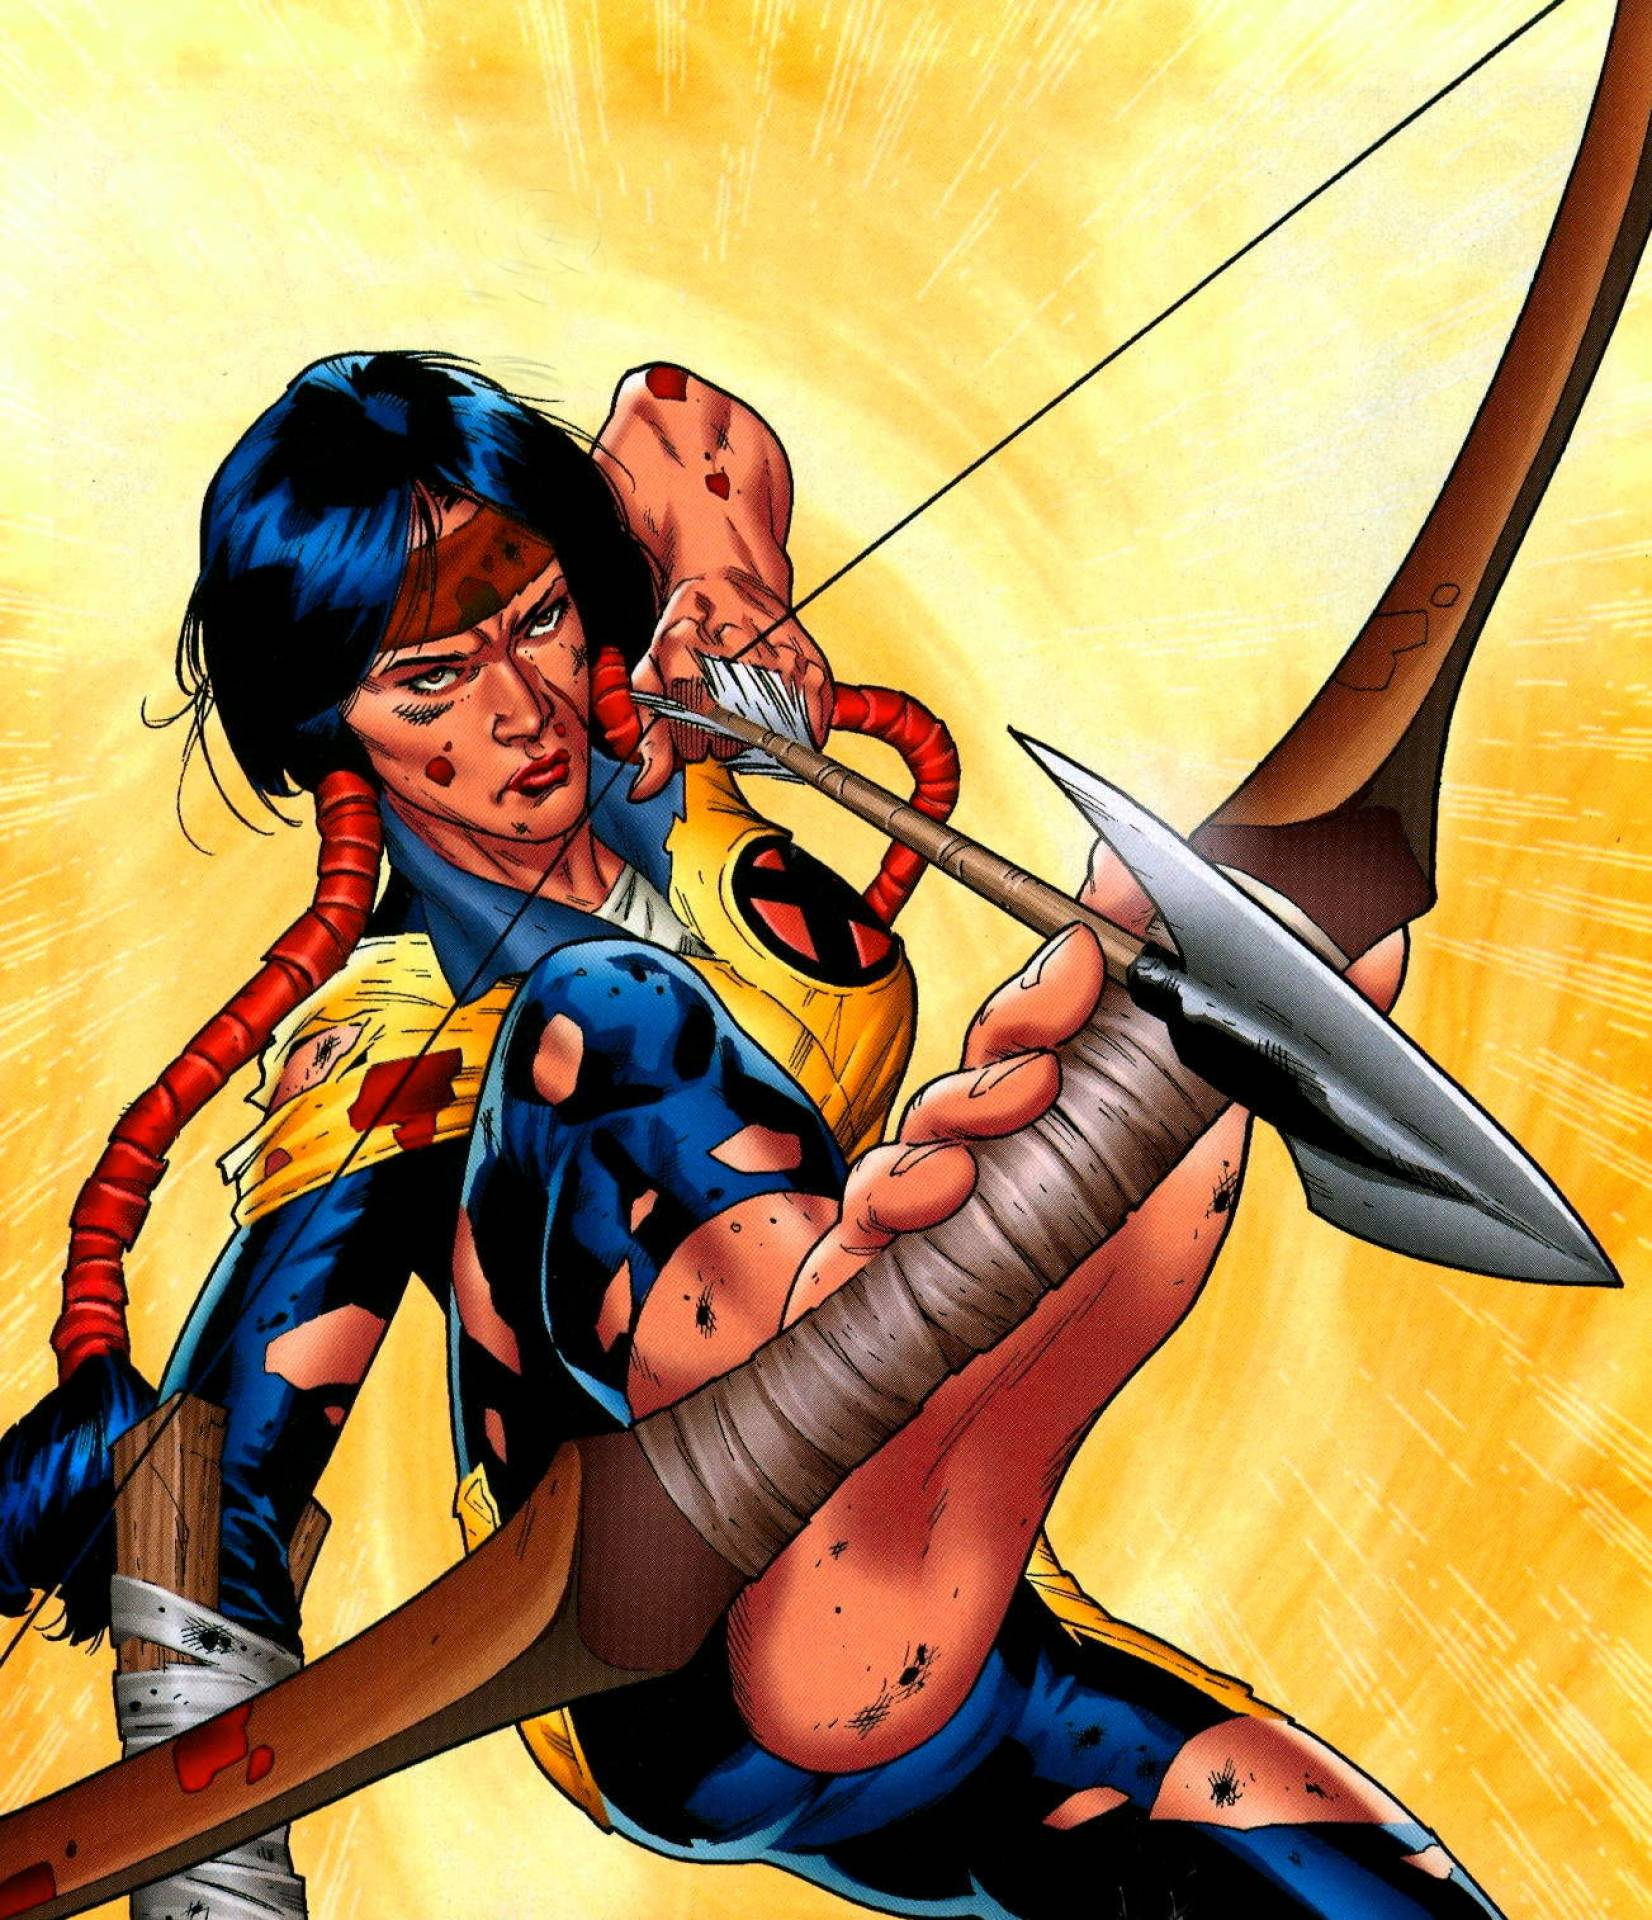 Dani Moonstar's mind games and illusions would easily manipulate Thor in a theoretical conflict.